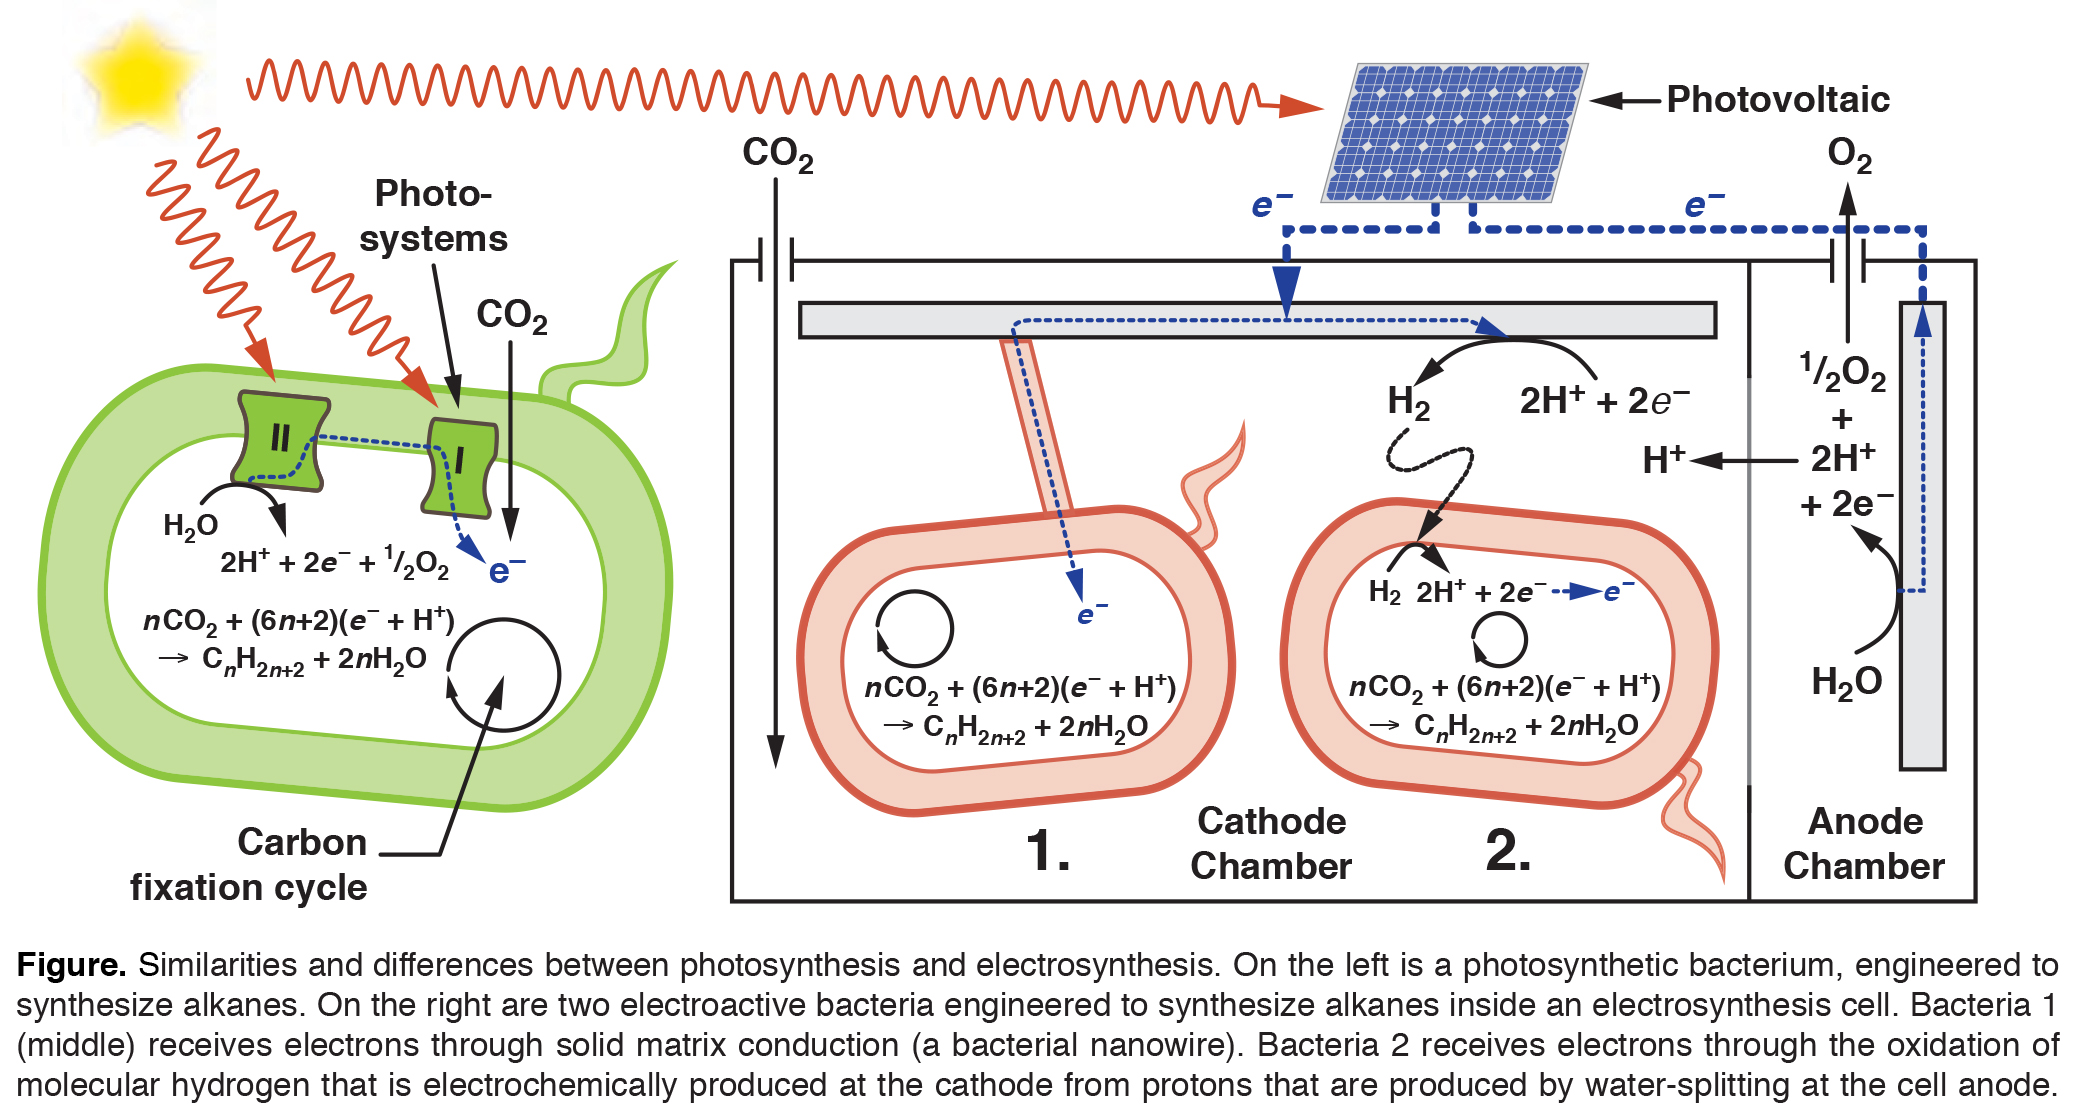 Early Evolution of Photosynthesis